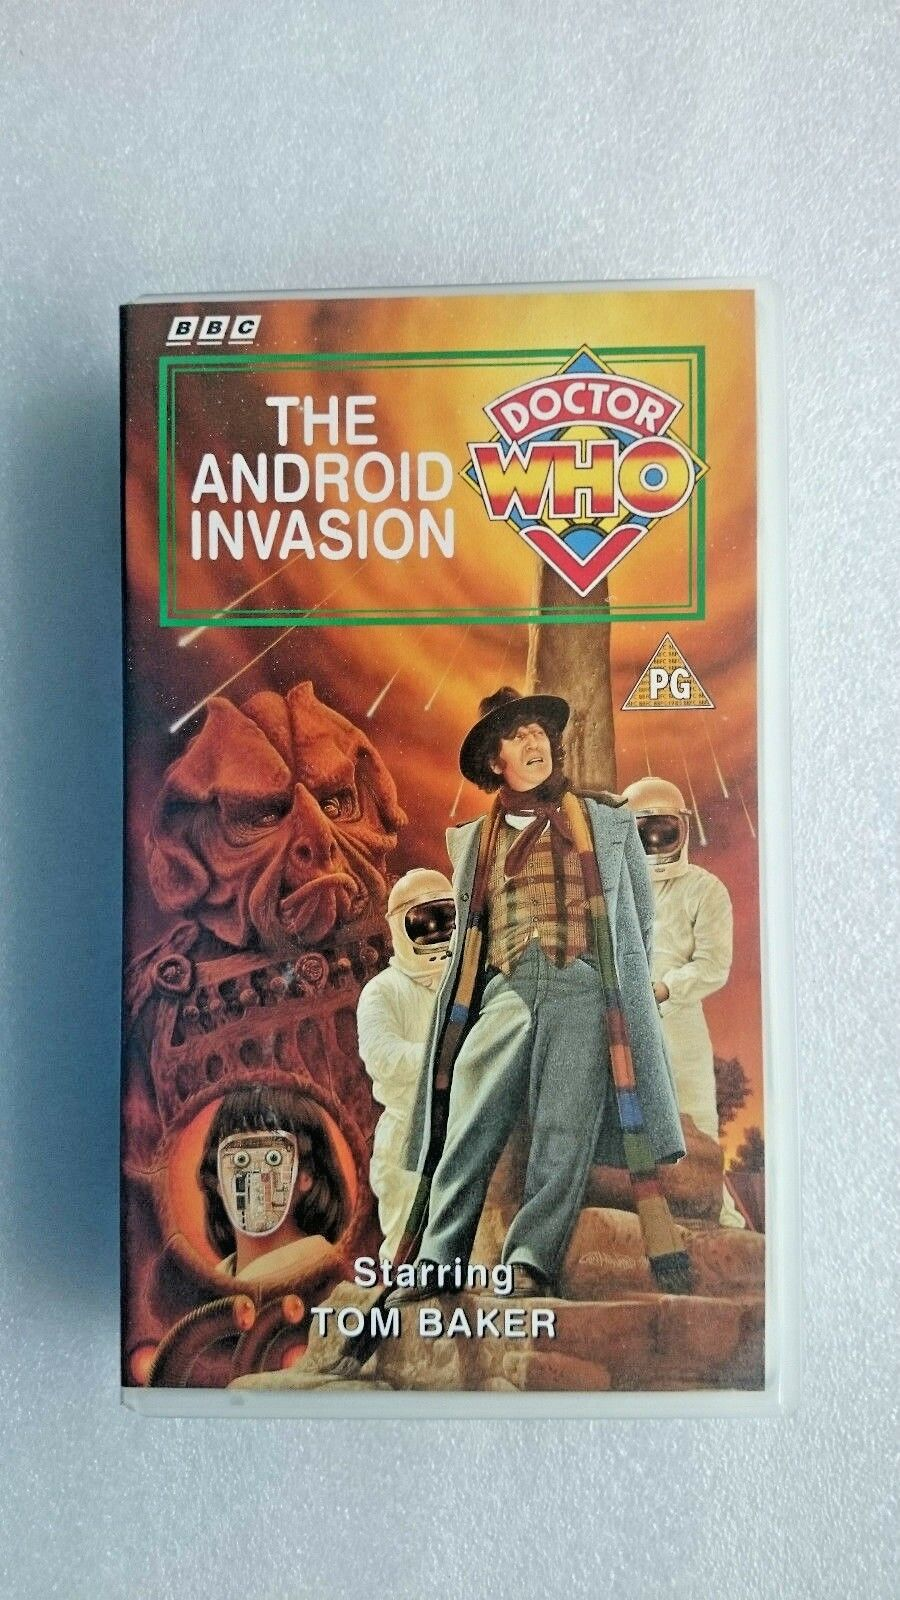 Doctor Who - The Android Invasion (VHS, 1995) - Tom Baker